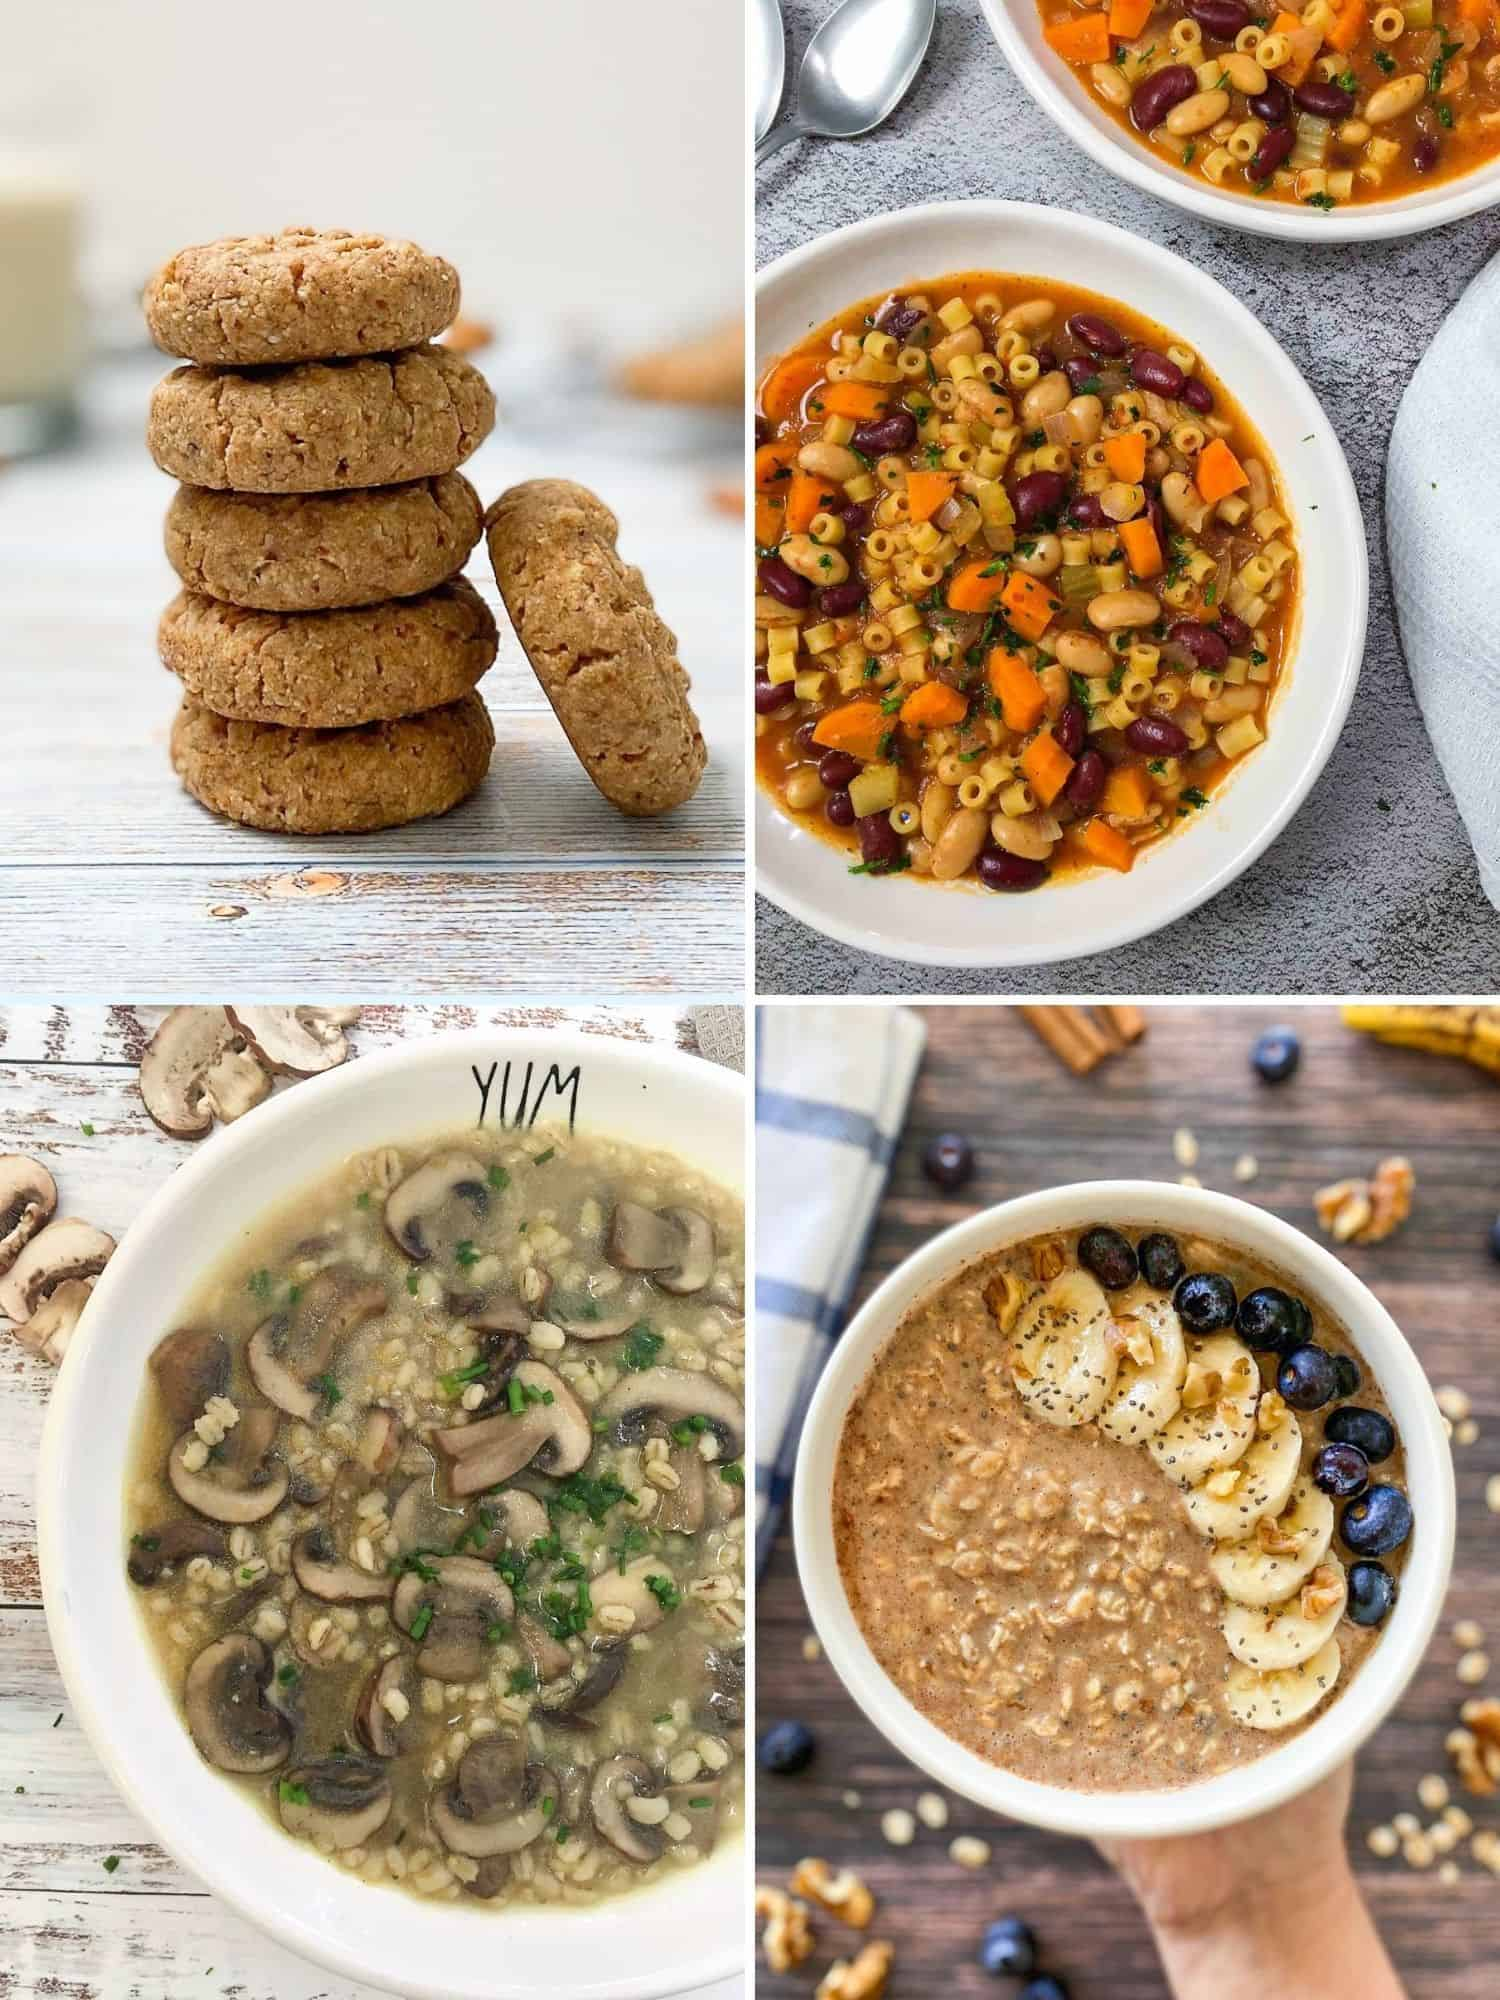 Collage of 4 food images: cookies, stew, soup, oatmeal.